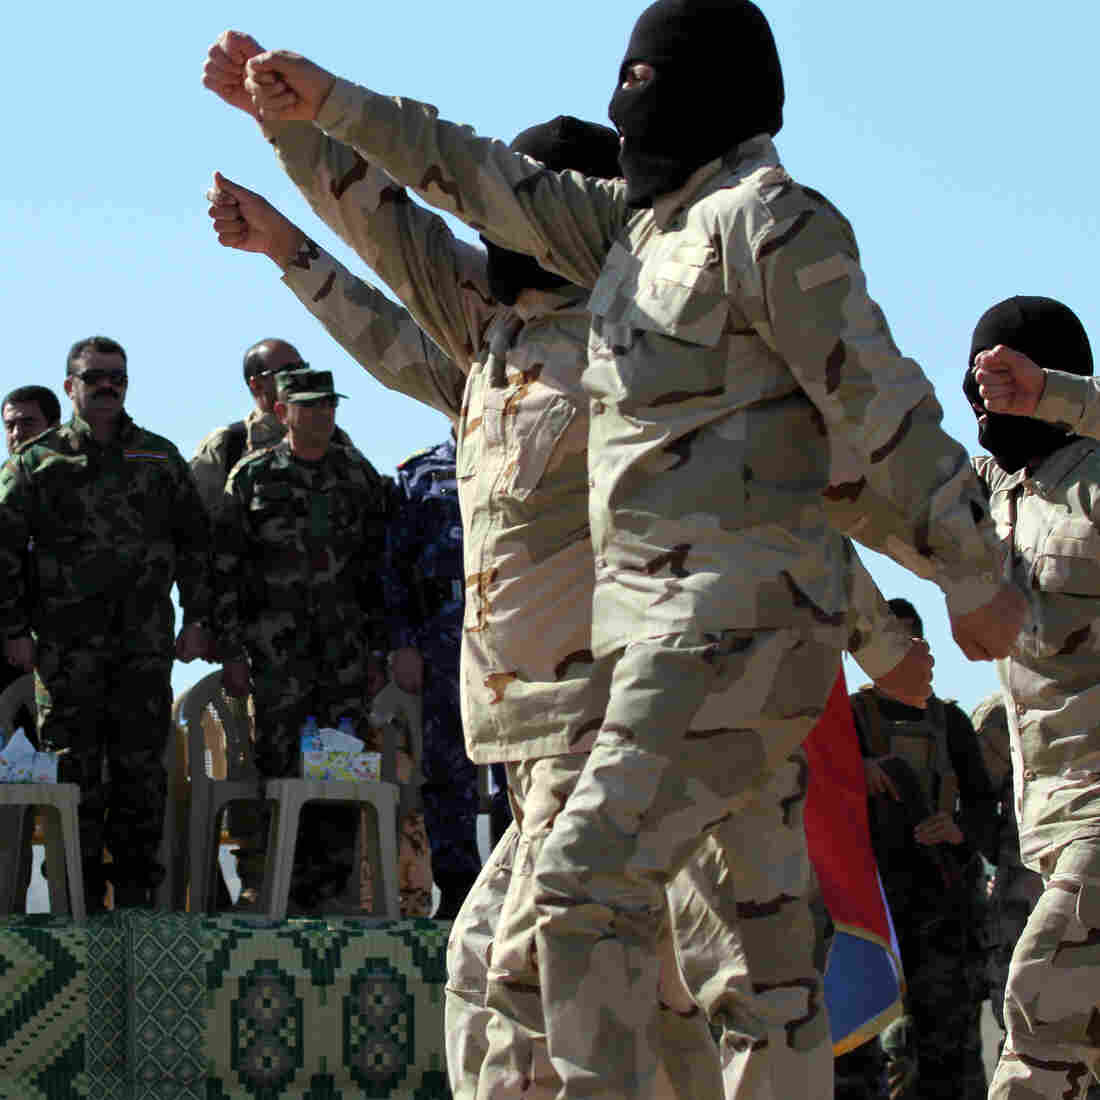 Iraq is preparing to take back Mosul, a senior U.S. military official says. Earlier this month, government-backed Sunni Arab tribesmen who've been training to fight ISIS marched northeast of Mosul, in northern Iraq.